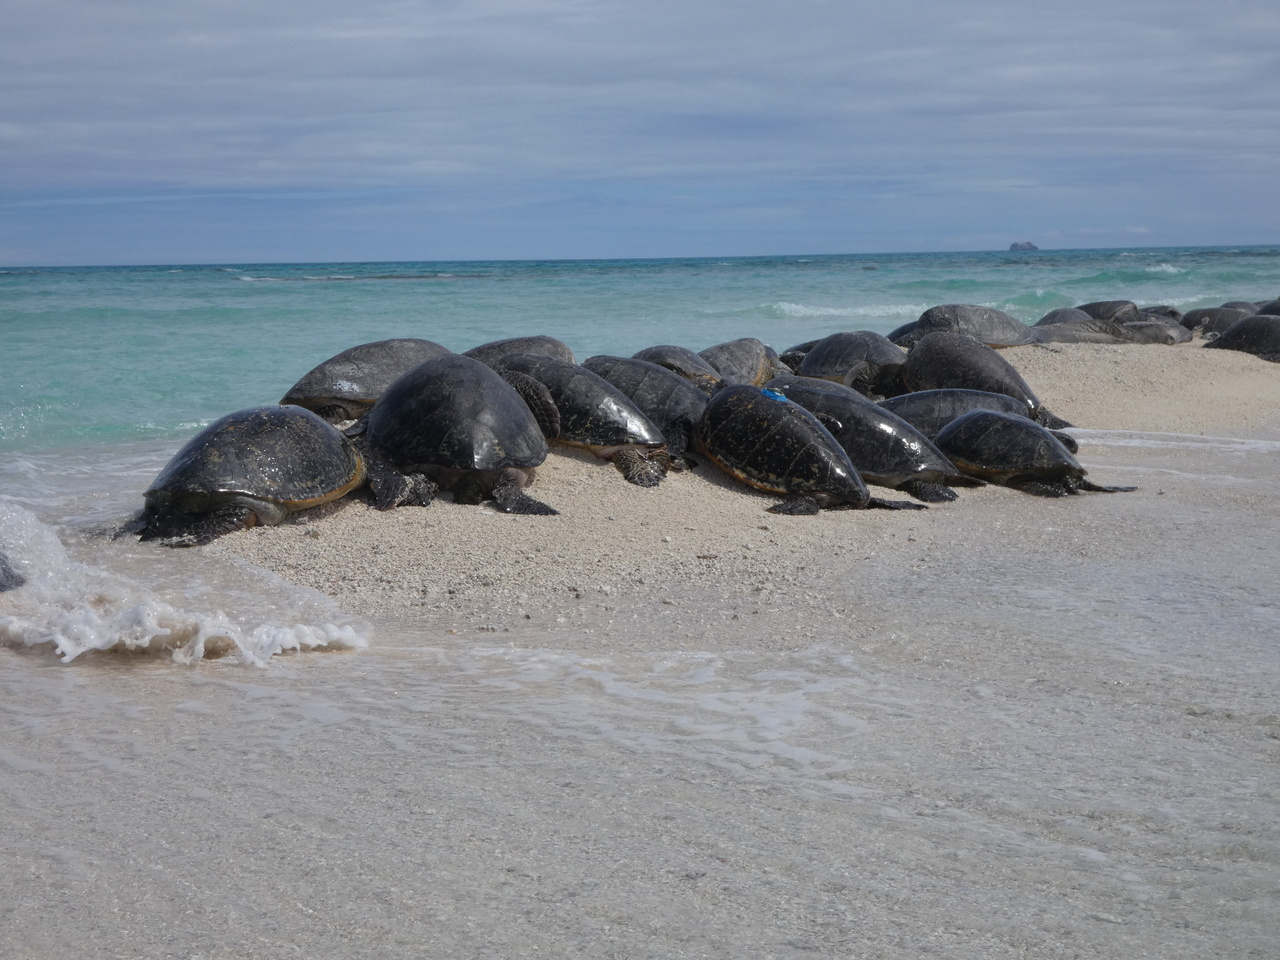 At least 23 turtles in photo on small spit of sand.